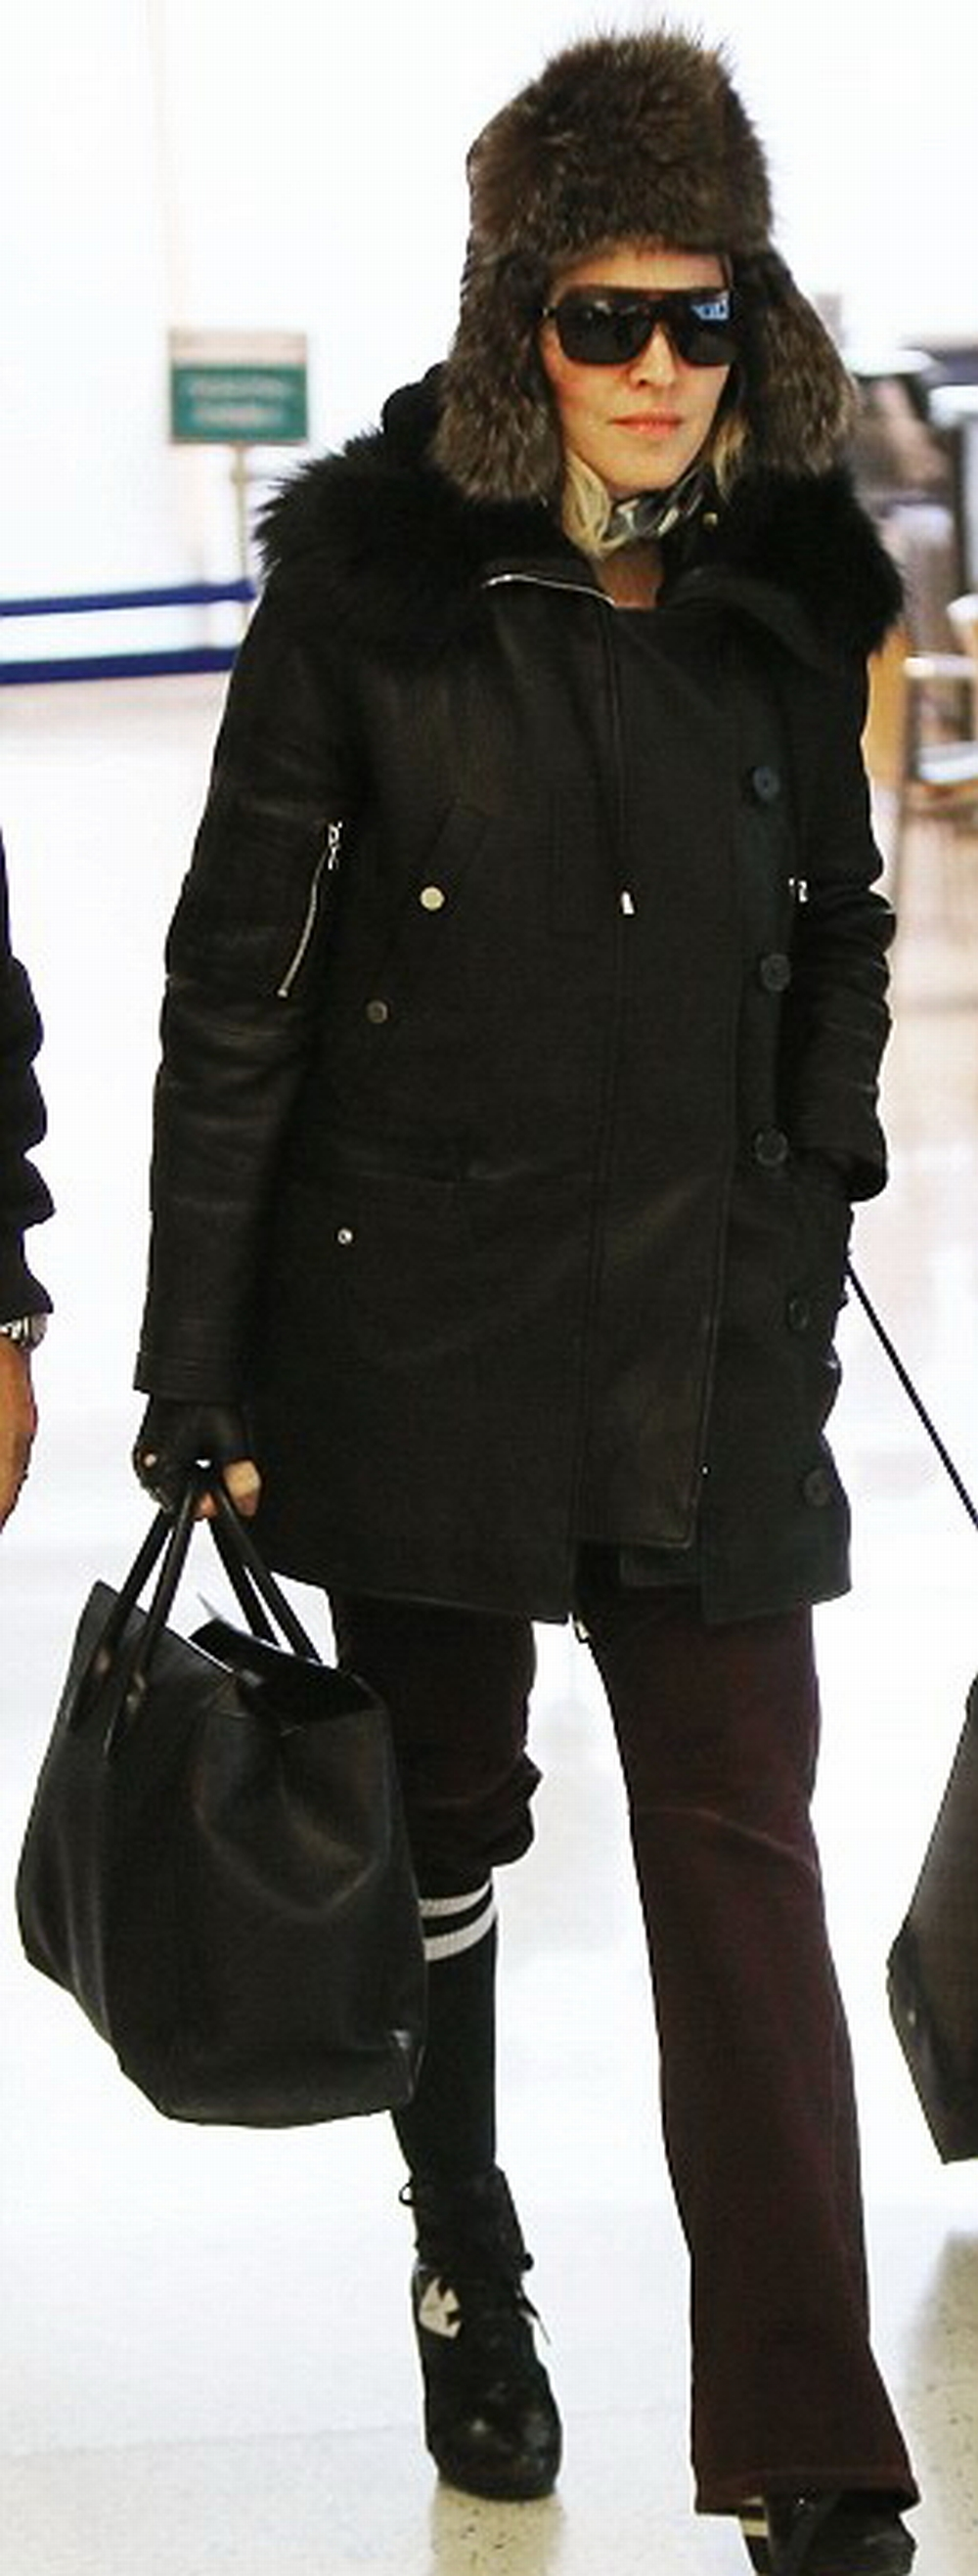 Madonna at JFK airport, New York - 1 February 2015 - Pictures (3)